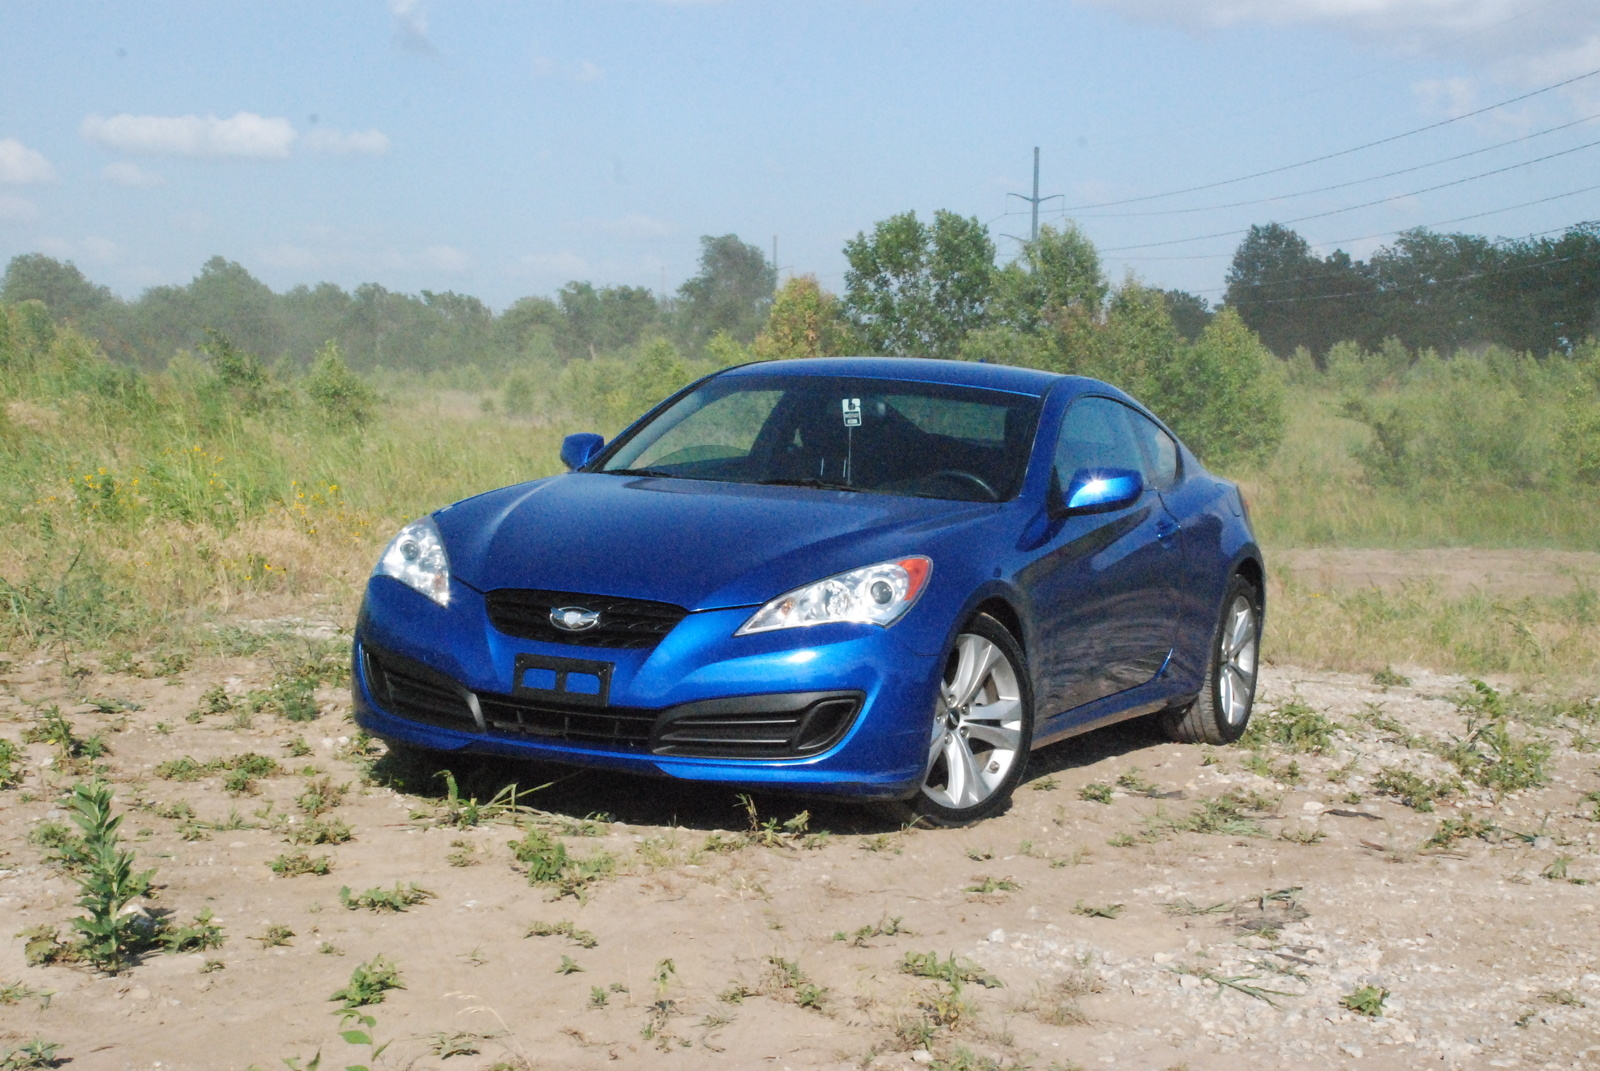 High Quality 2010 Hyundai Genesis Coupe 2.0T RWD Used Cars In Tulsa, 74134